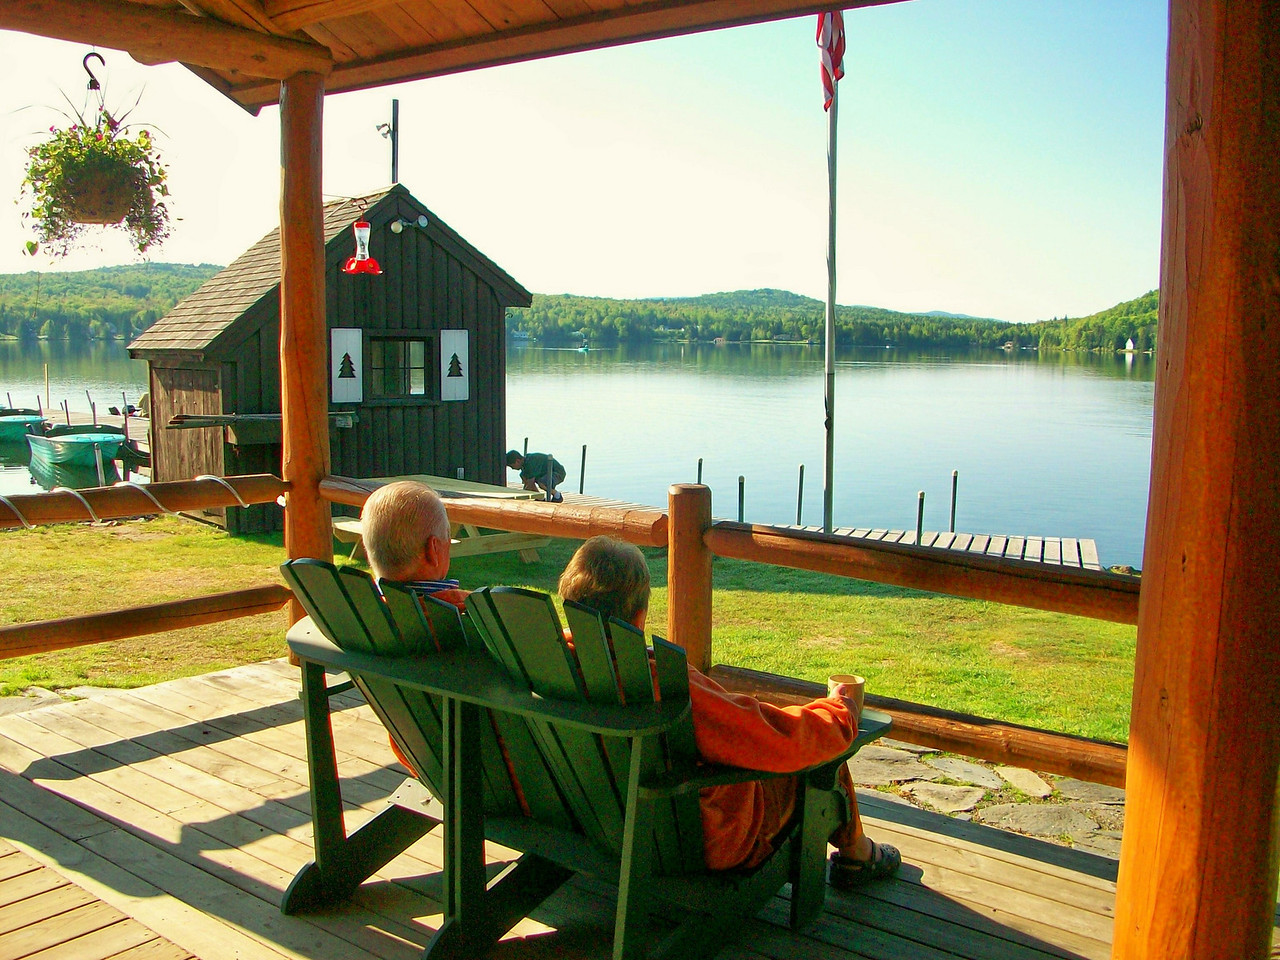 Relaxing lakeside at Tall Timber Lodge.